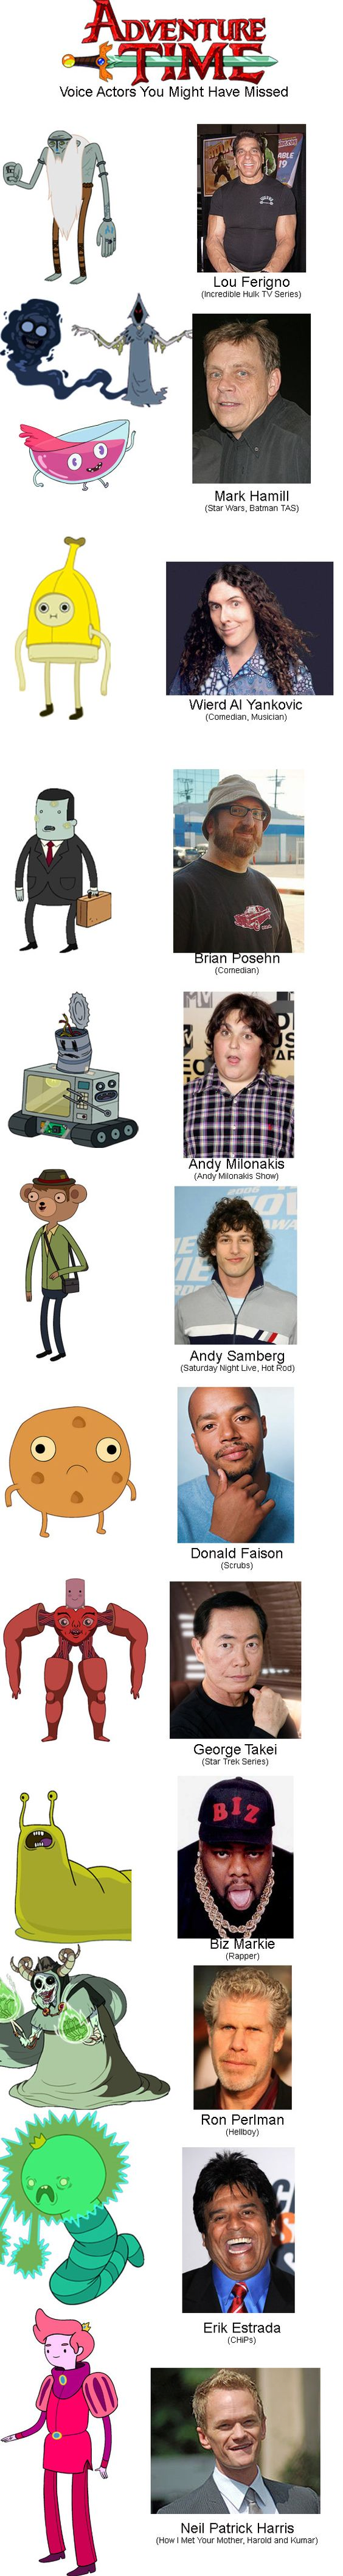 Marshall Lee Voice Actor And My Jesus On Pinterest